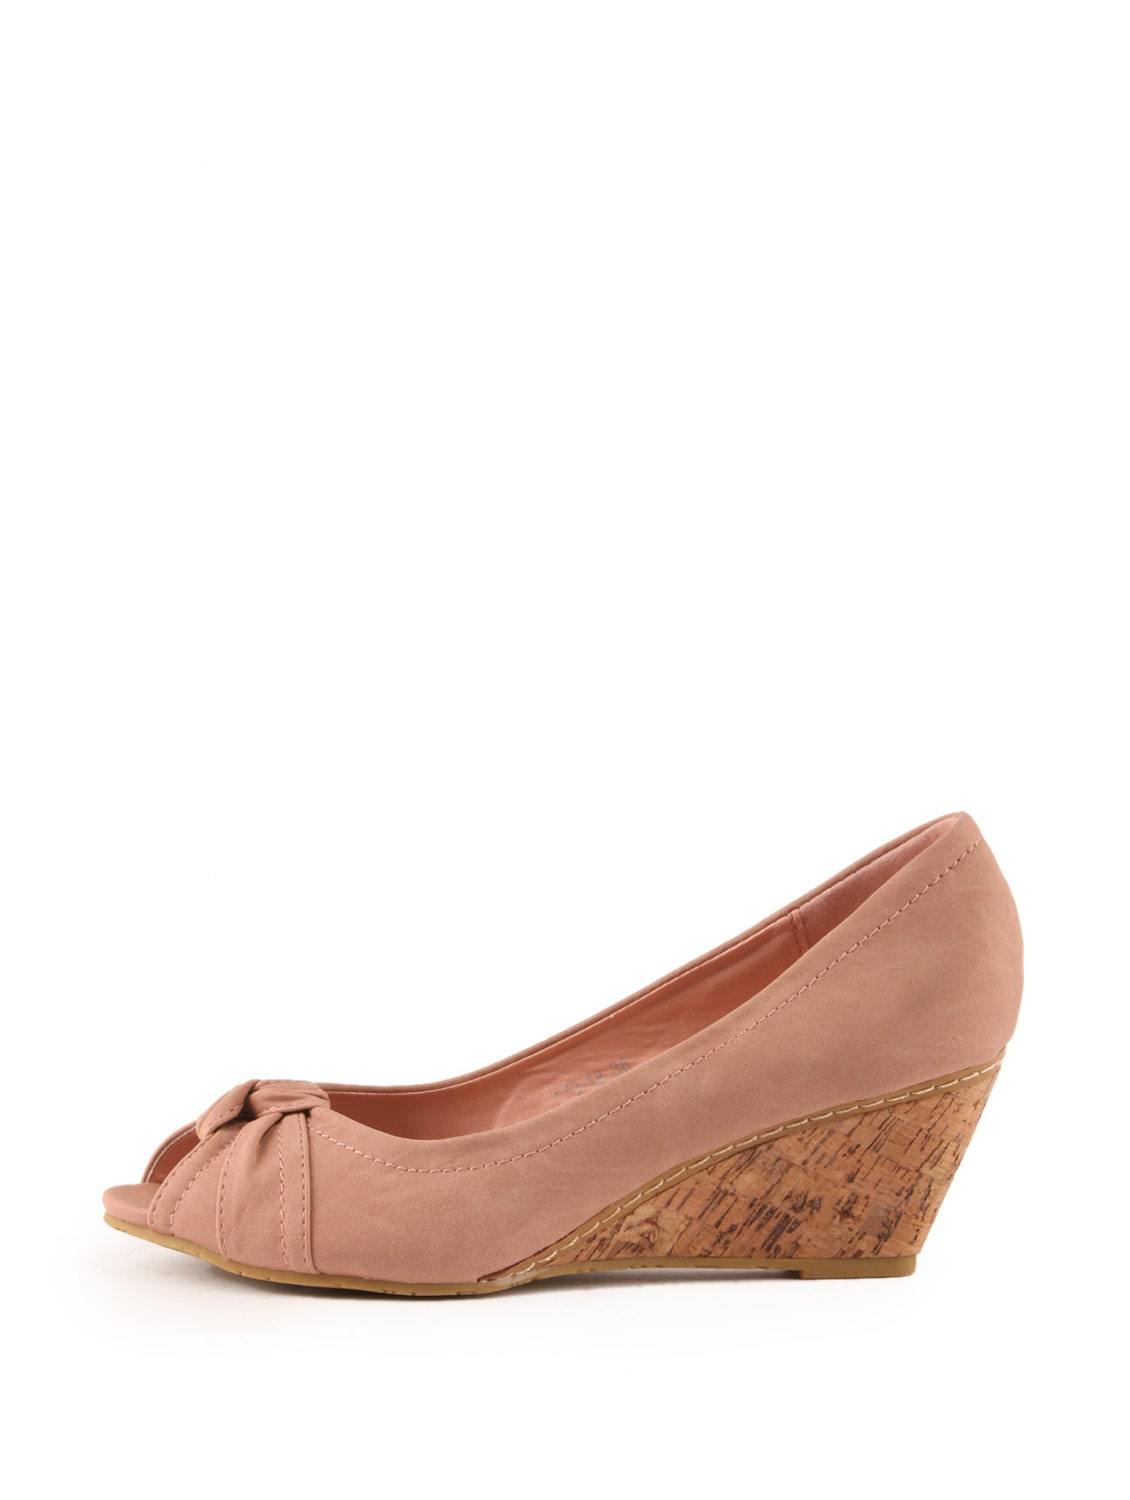 8a82250c38c Buy Pink Peep Toe Wedge Sandals With Cork Heel for Women from Tresmode for  ₹2700 at 0% off